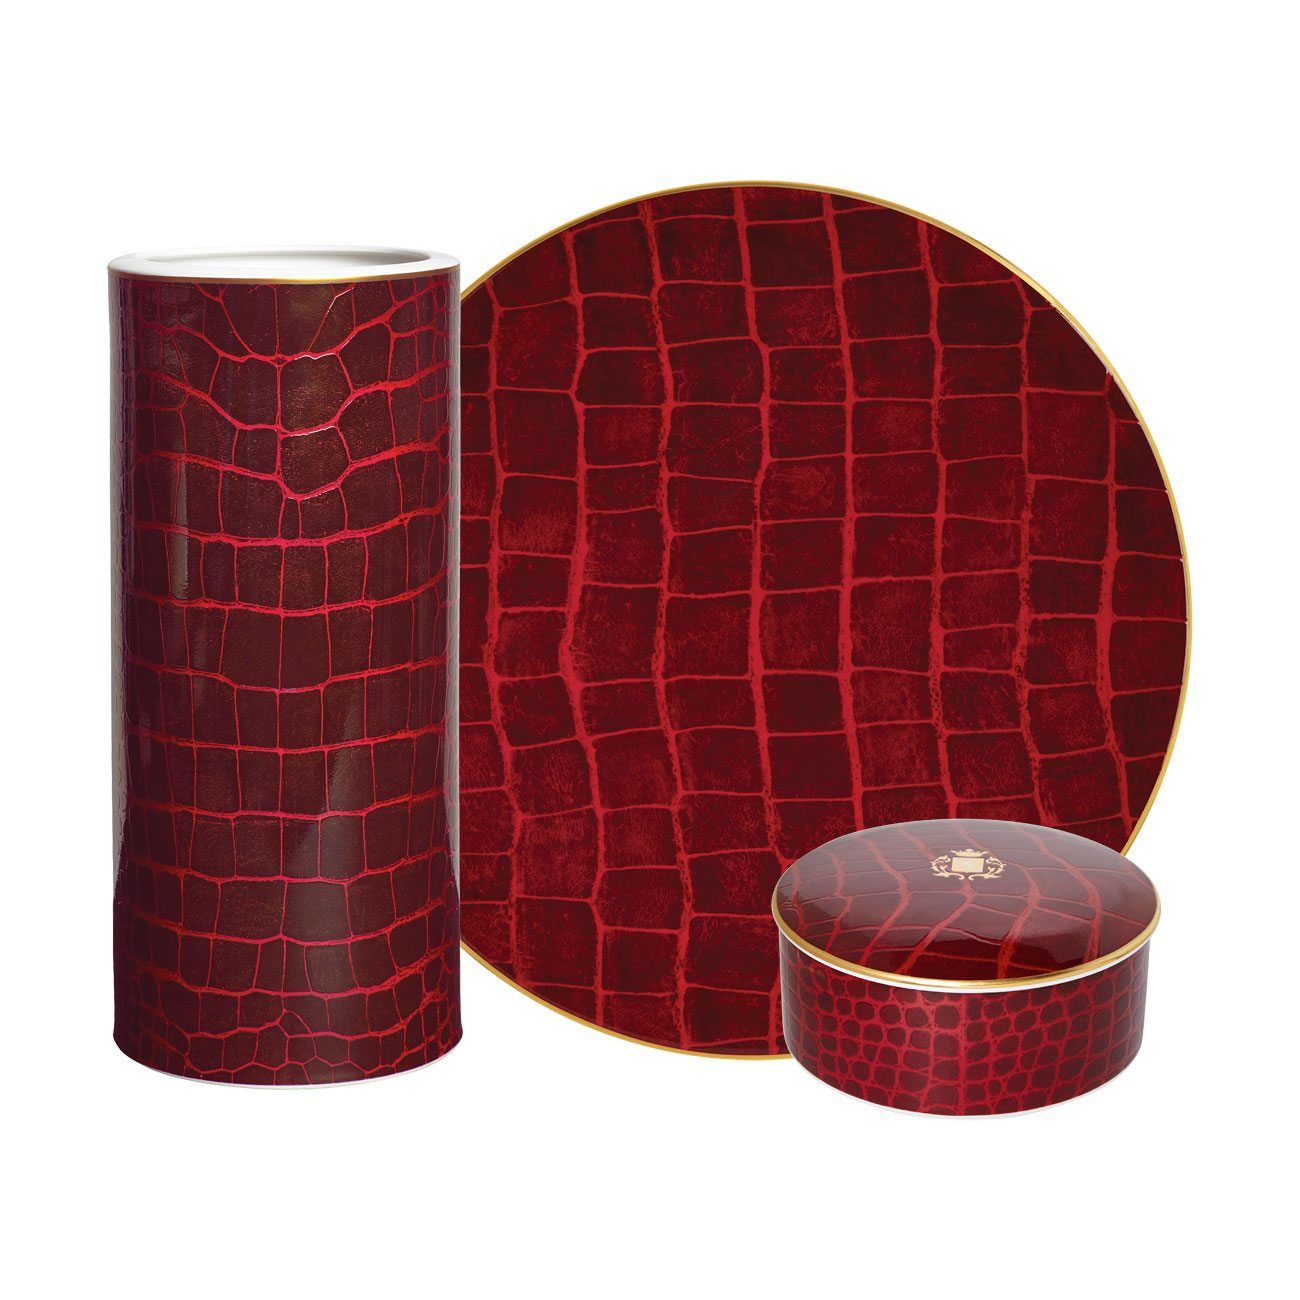 Prouna Alligator Ruby Collection